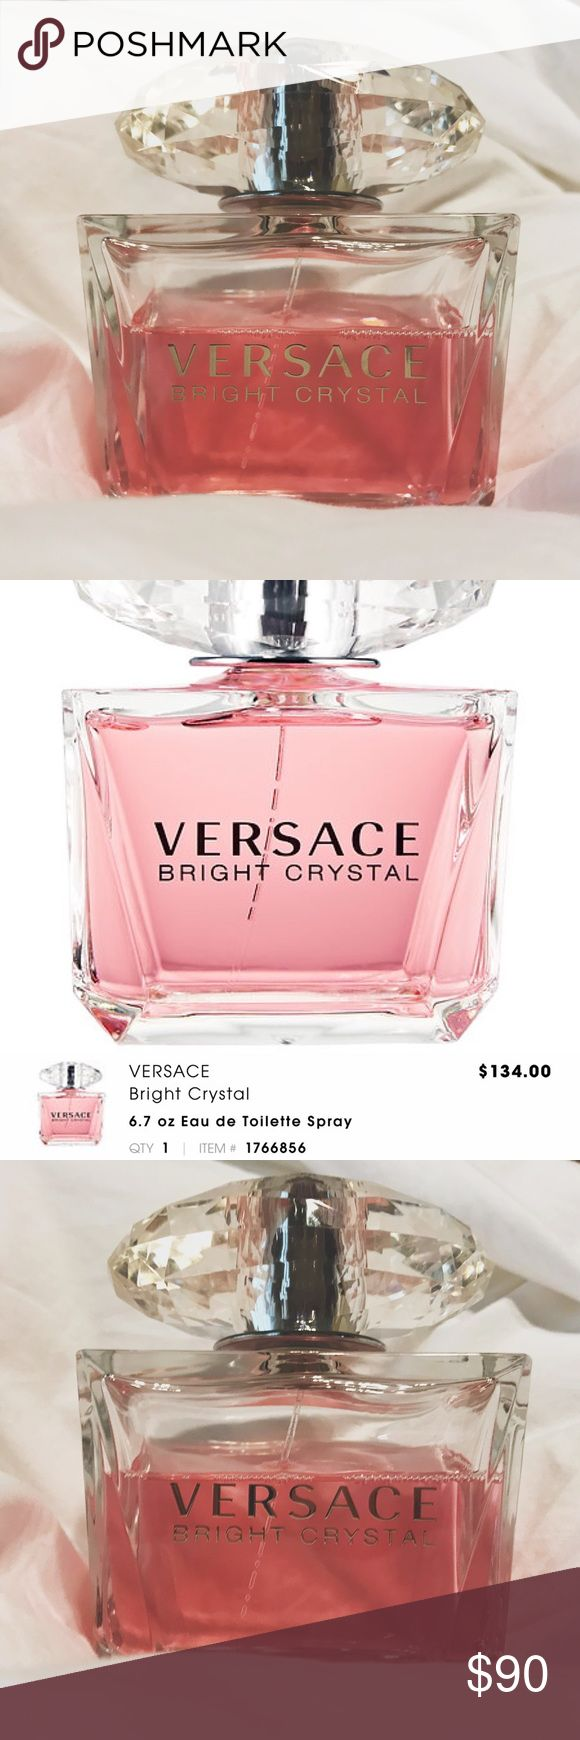 Versace Bright Crystal 6.7 oz XL Eau de Toilette About 1/3 of the way used, approx. 2/3 left. Purchased from Sephora. Versace Makeup